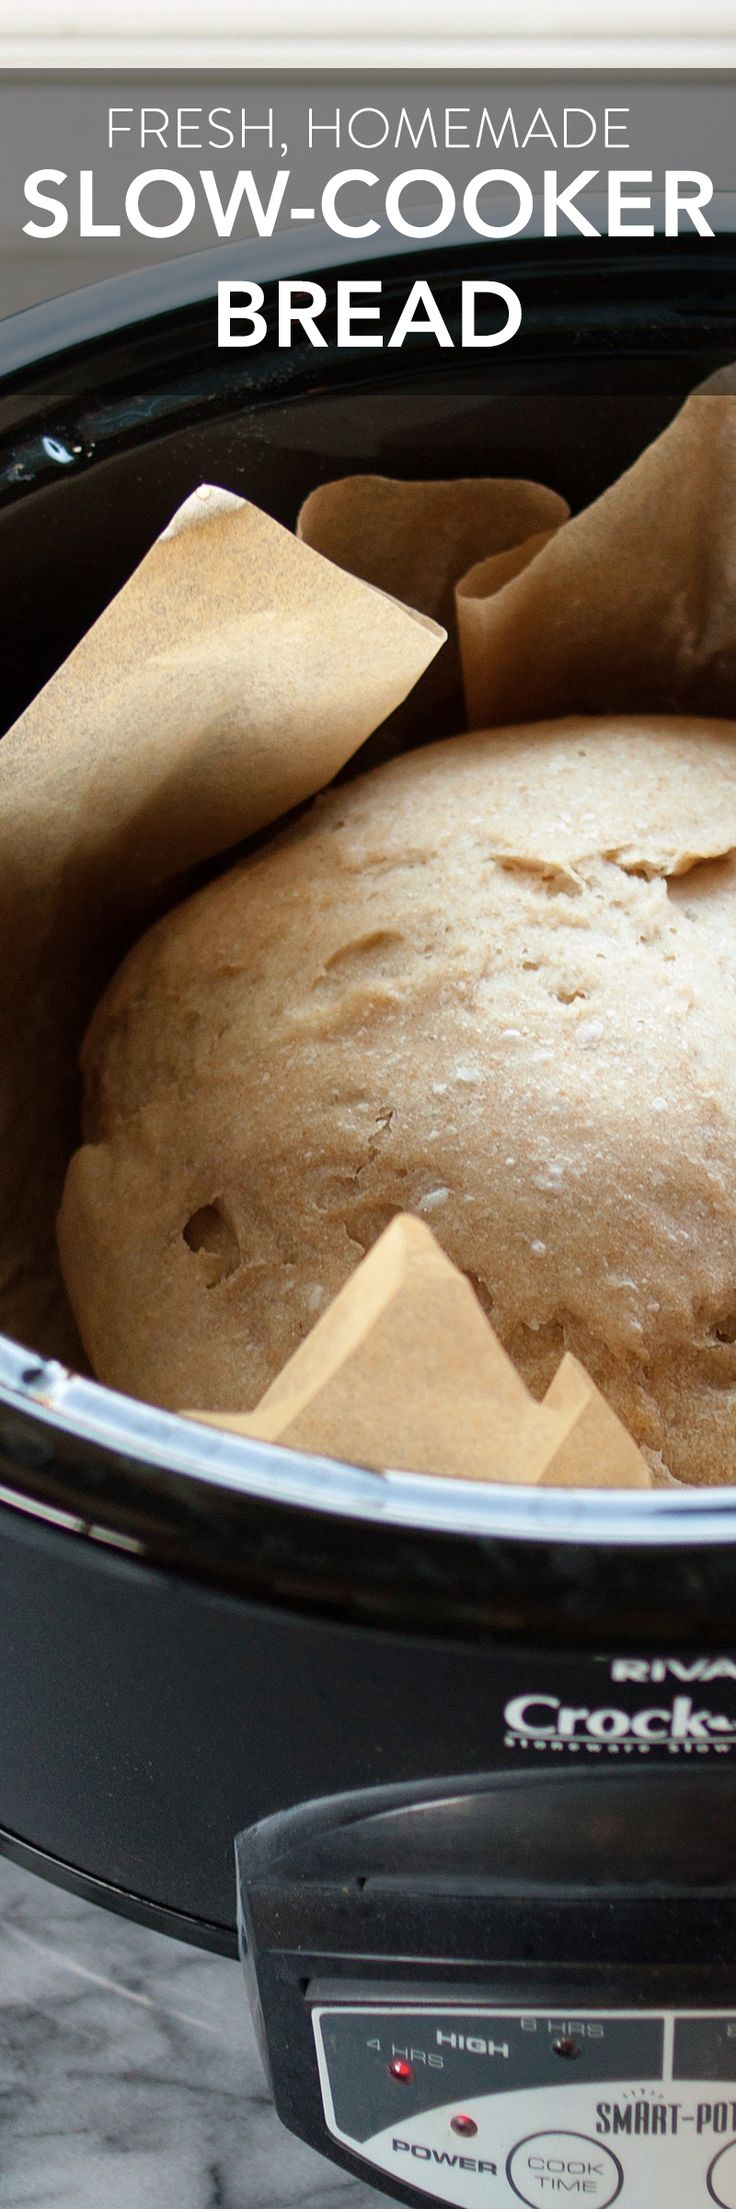 Fresh, homemade from scratch, slow cooker bread. Did you know there were recipes for baking bread in crock pots? This is such a neat tip and a great trick for keeping the kitchen cool when it's hot!